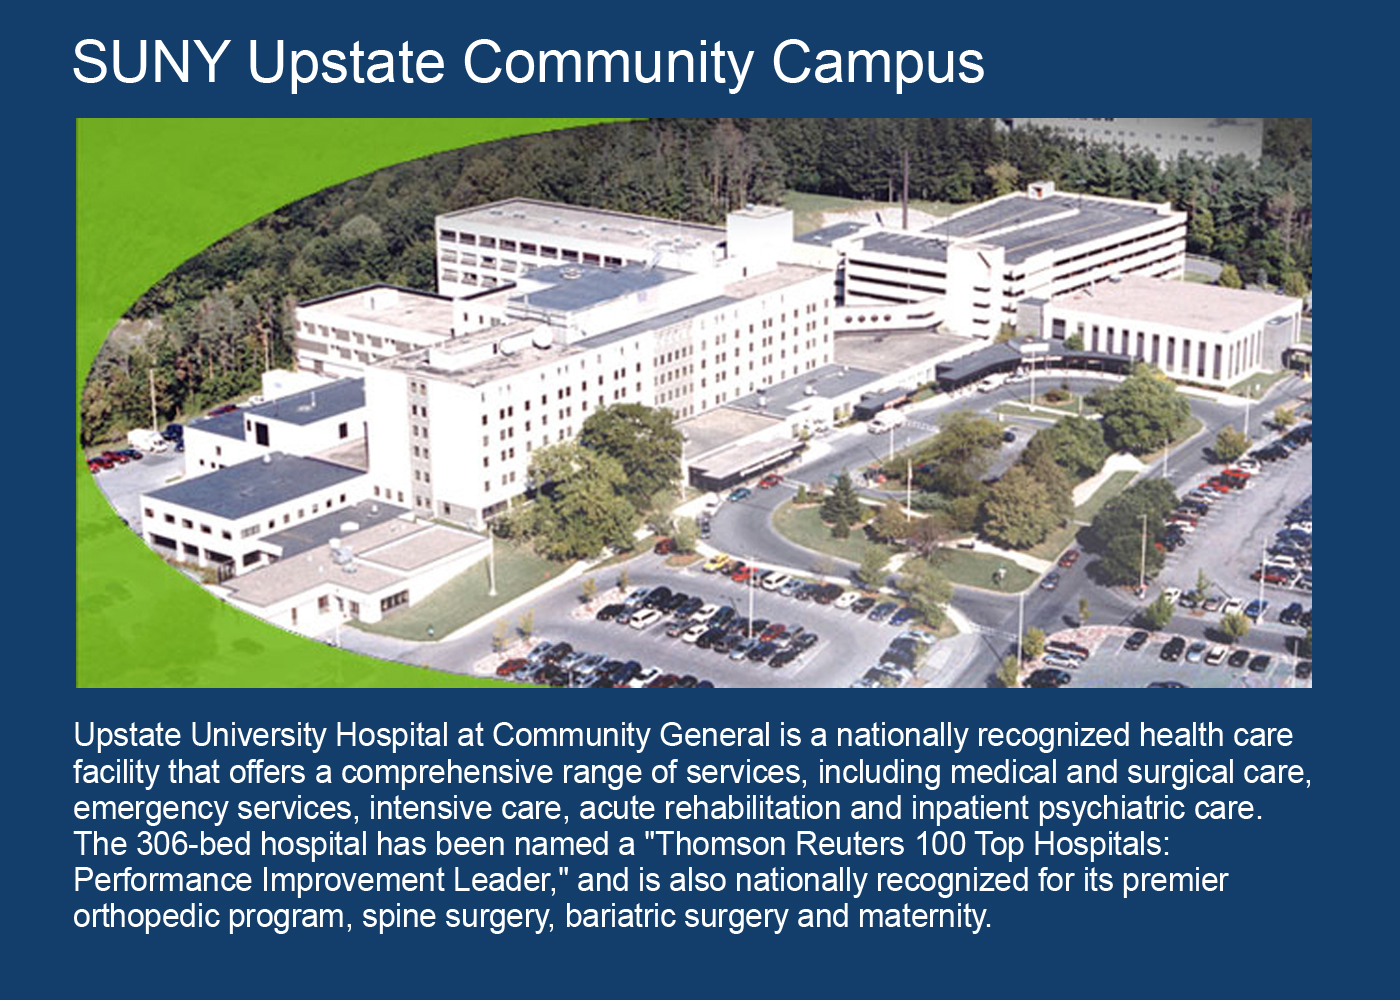 SUNY Upstate Community